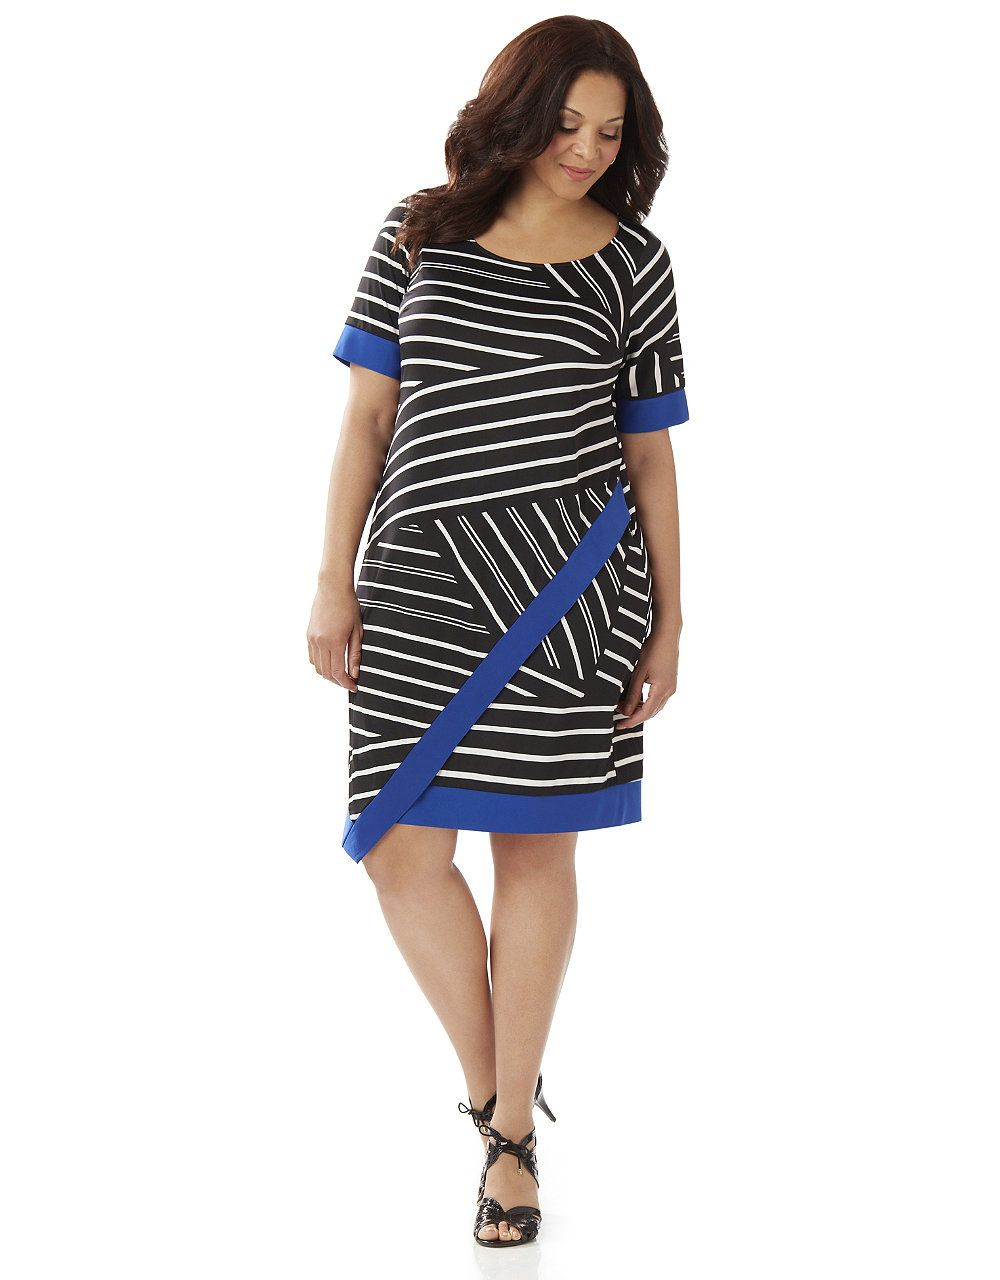 Striped Contrast Shift Dress Catherines Clothes Pinterest